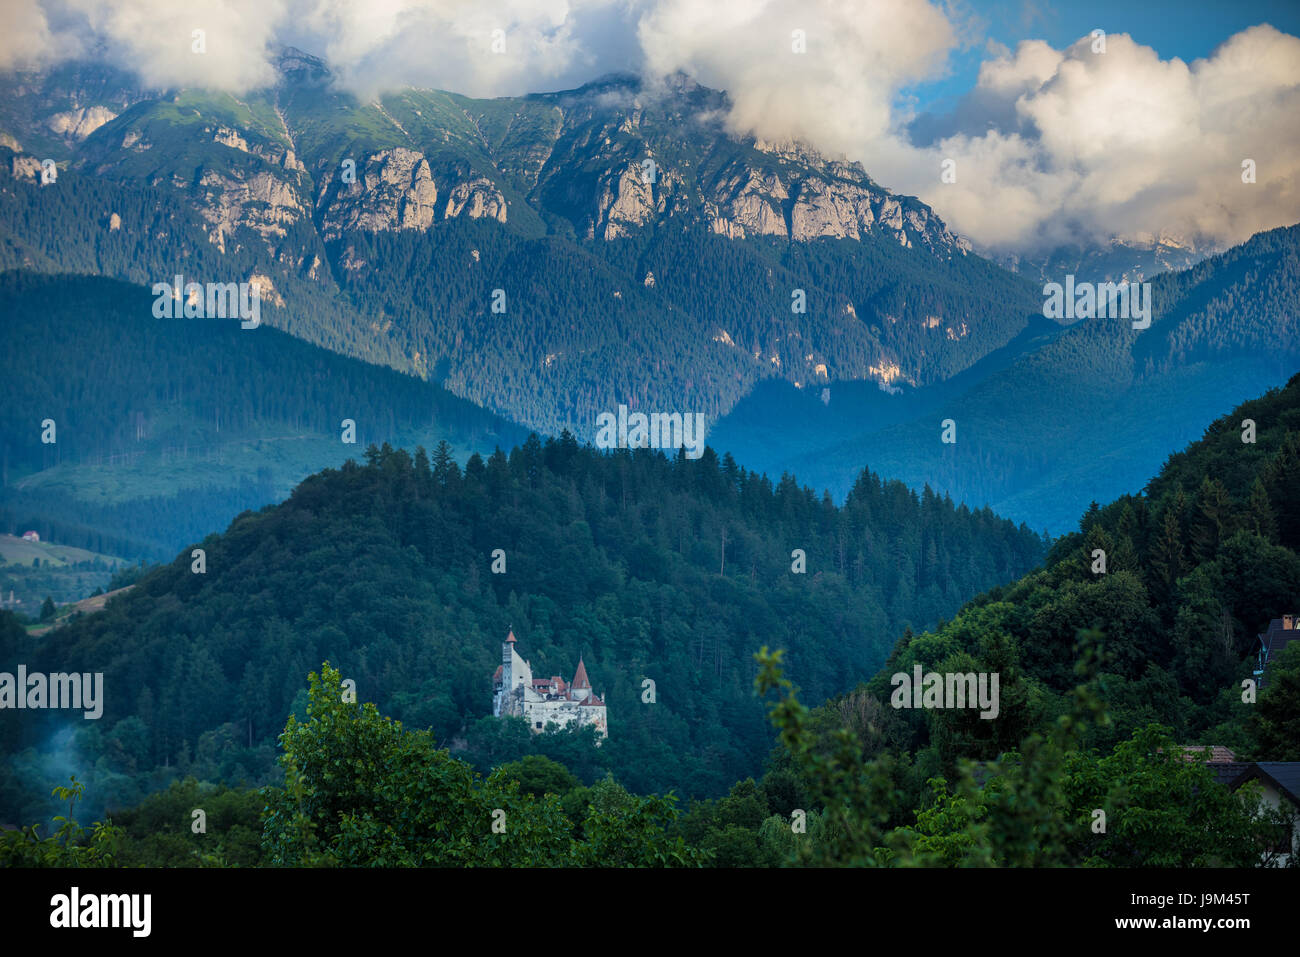 Aerial view of Bran commune in Brasov County of historical region Transylvania, Romania. Bran Castle on photo - Stock Image